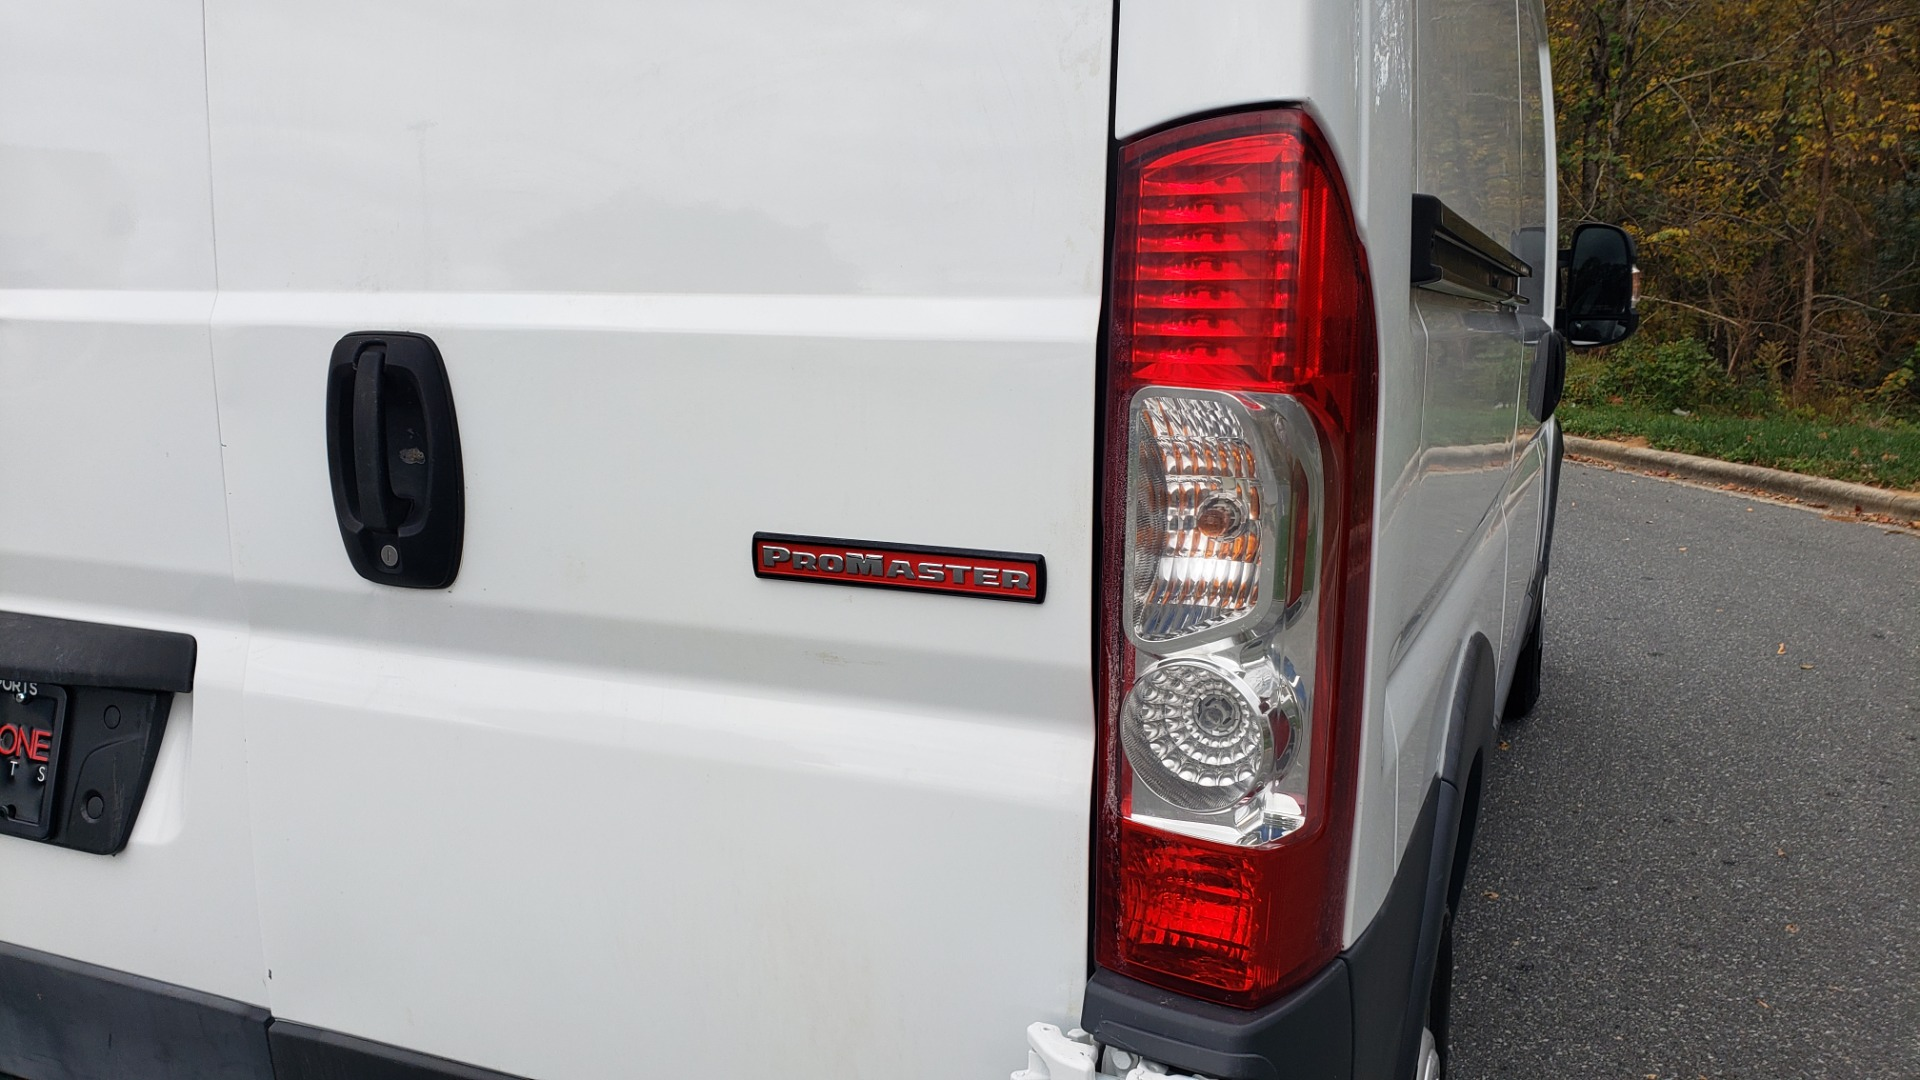 Used 2015 Ram PROMASTER CARGO VAN 136-INCH WB / LOW ROOF / LADDER RACK / INSIDE RACKS for sale Sold at Formula Imports in Charlotte NC 28227 28